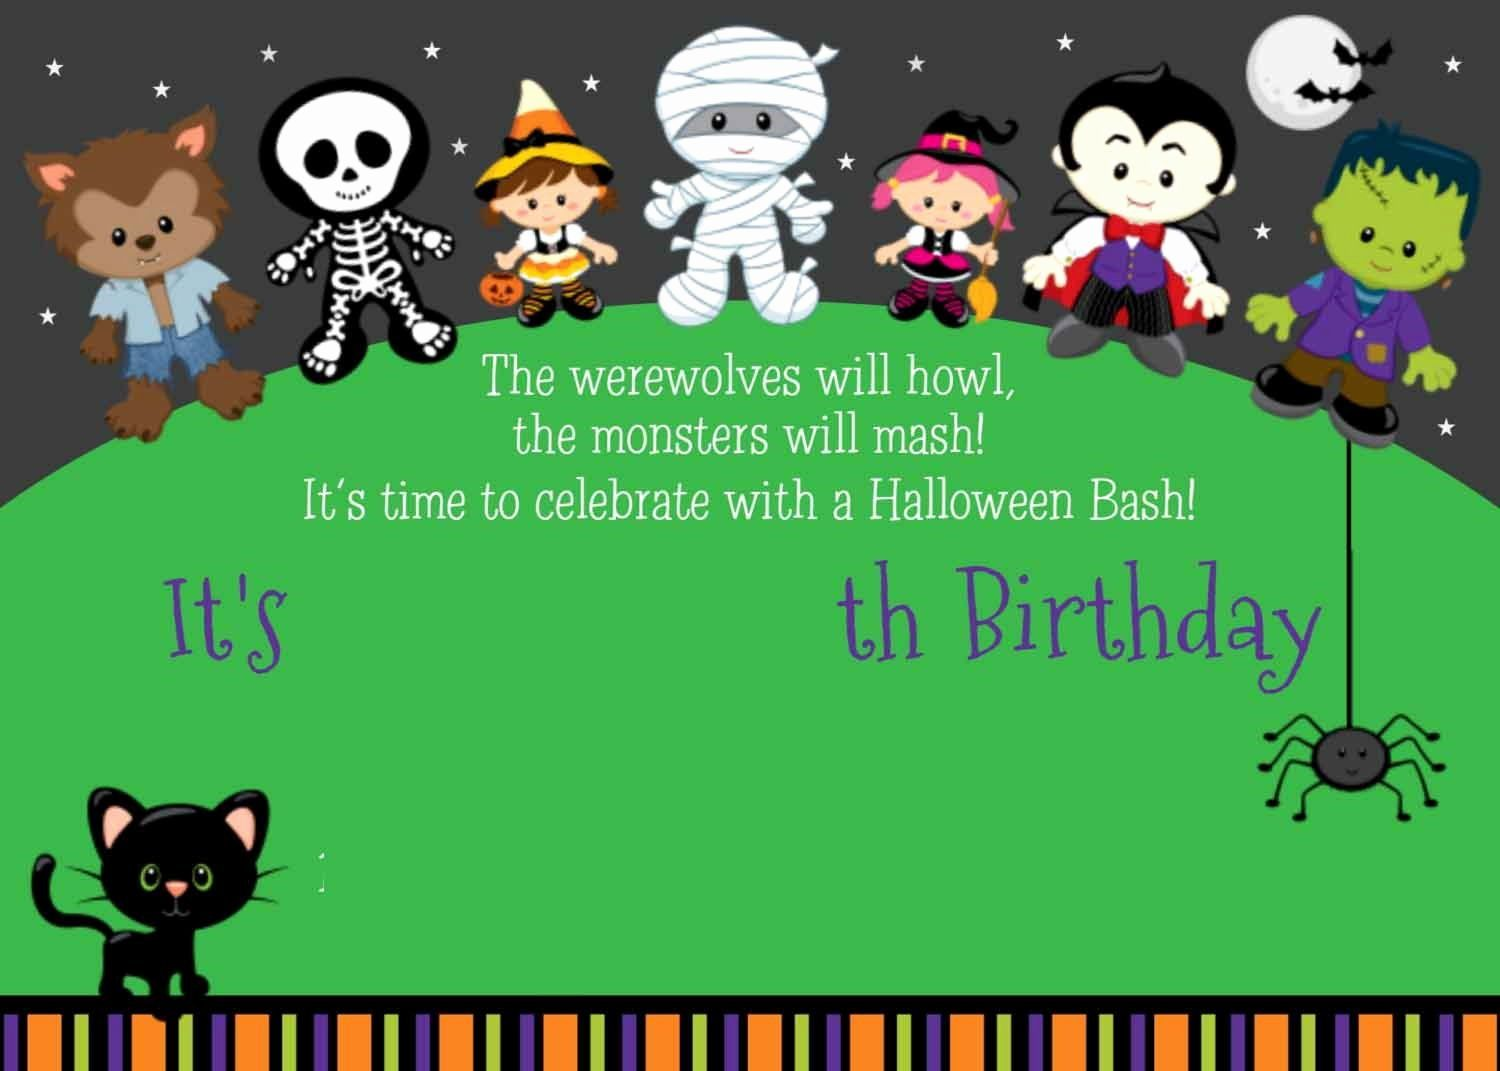 Halloween Birthday Party Invitations Unique Free Printable Halloween Birthday Party Invitations Halloween Party Invitation Template Halloween Party Invitations